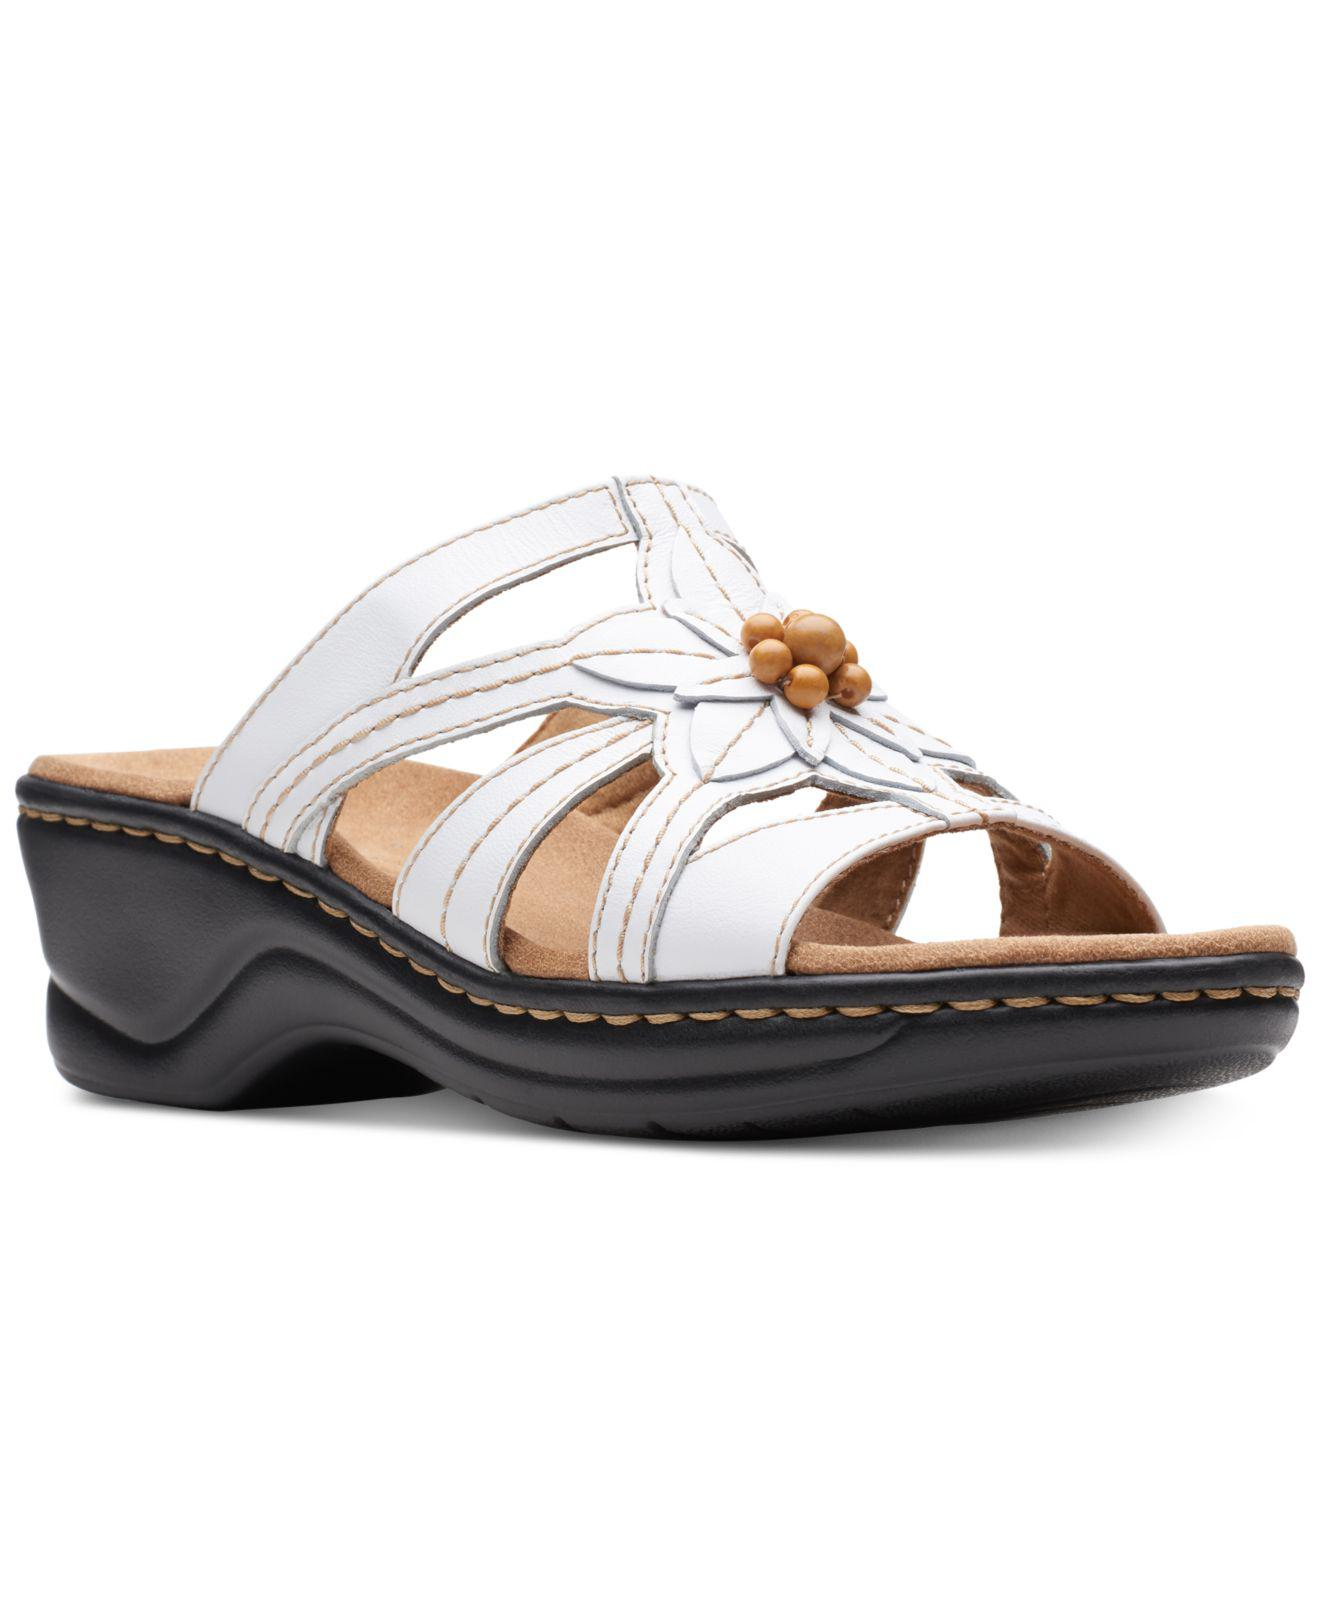 c3db55a68e6 Lyst - Clarks Lexi Myrtle Sandals in White